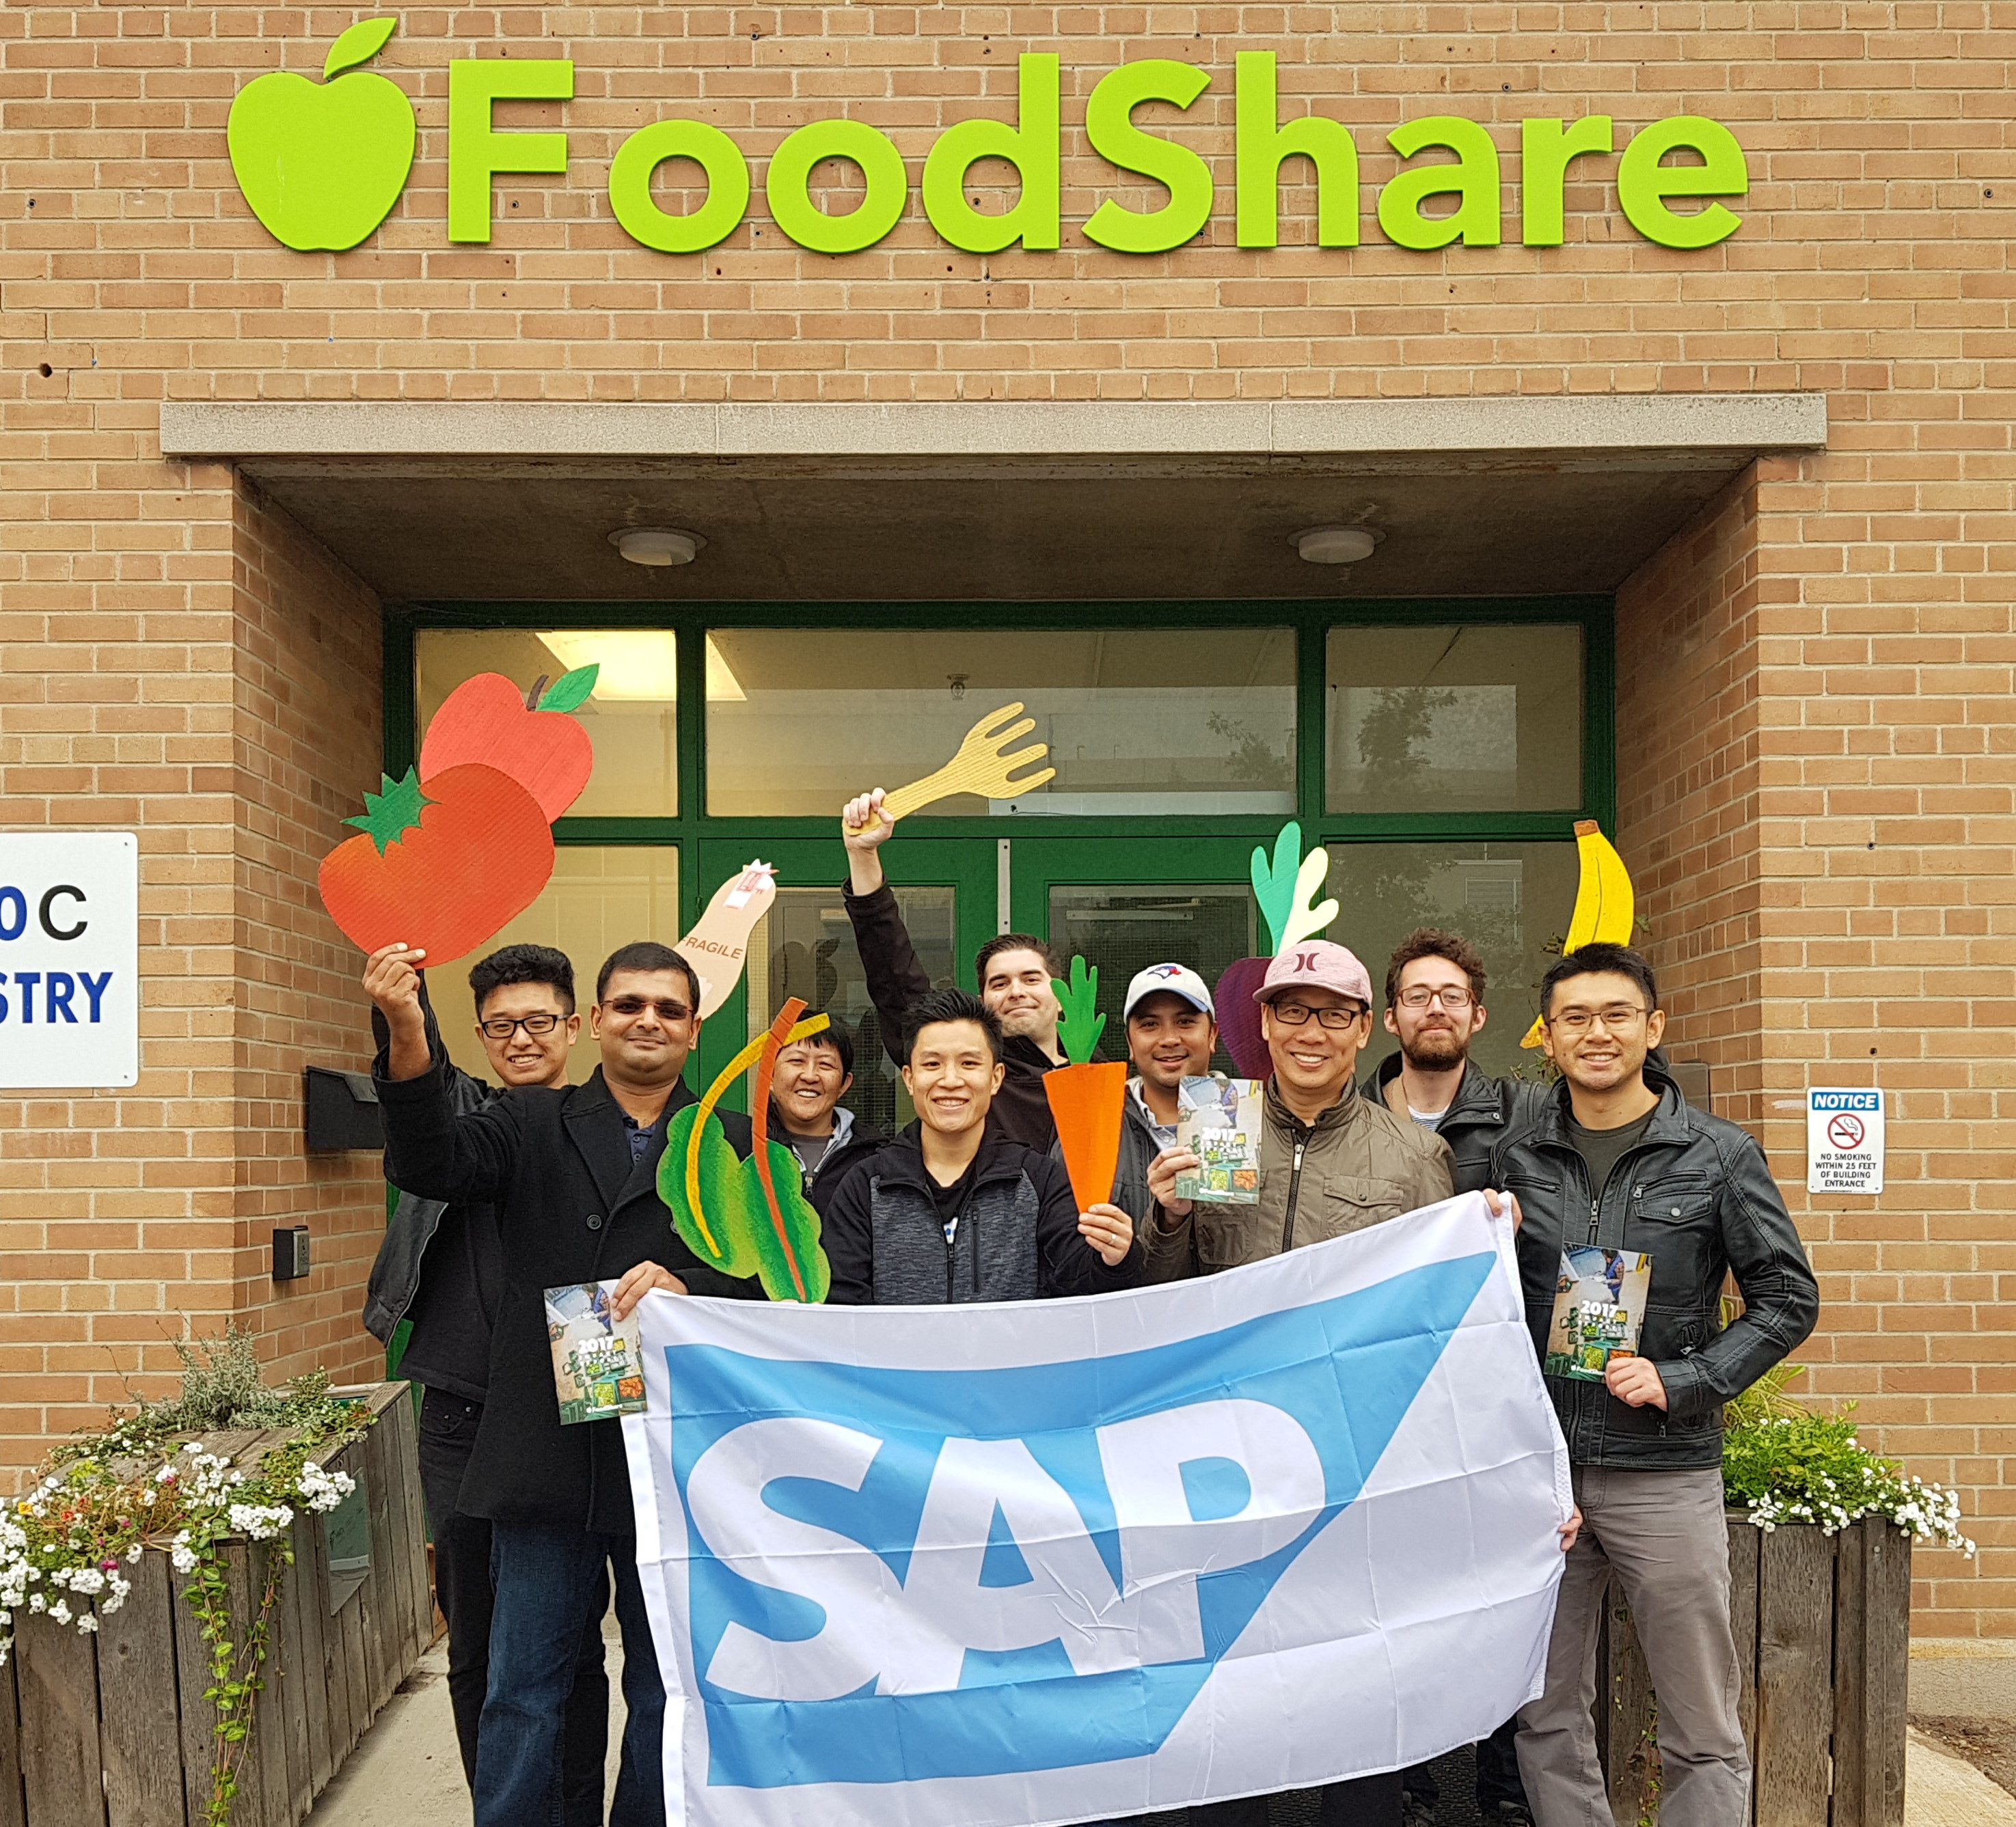 Volunteers from SAP volunteered at FoodShare on behalf of Month of Service, packing Super School Packers for youth breakfast programs.